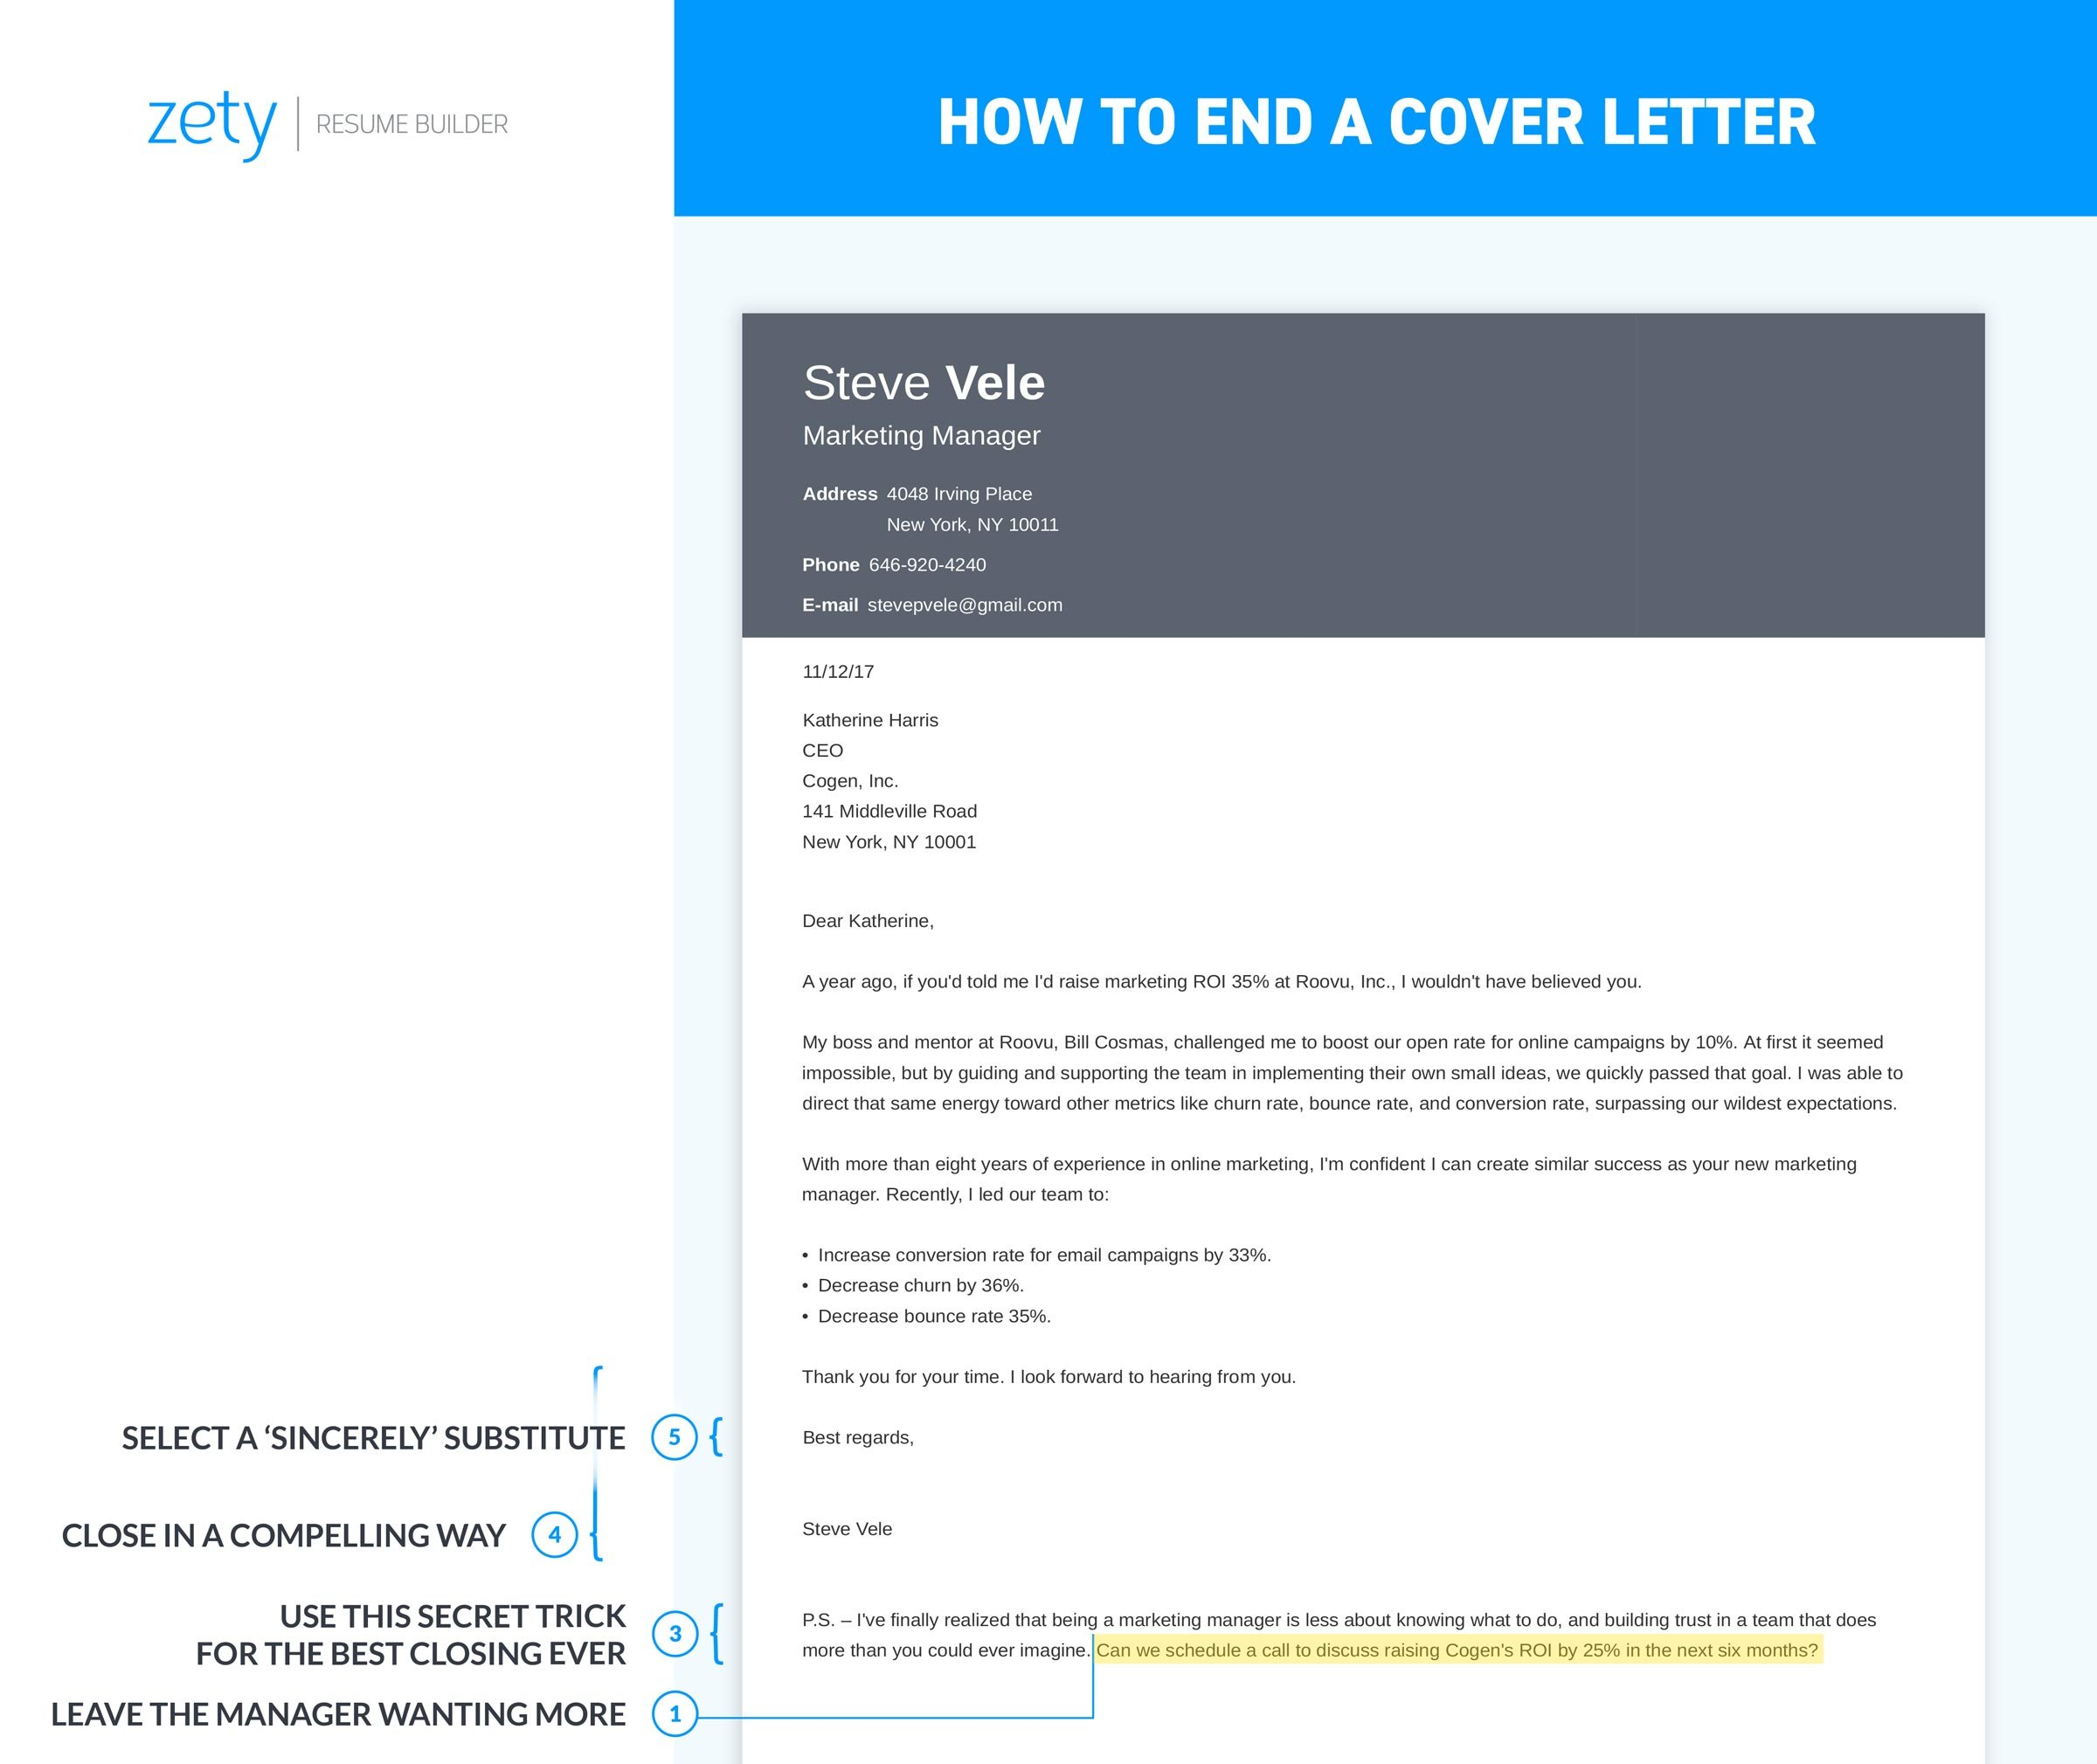 Infographic About How To End A Cover Letter